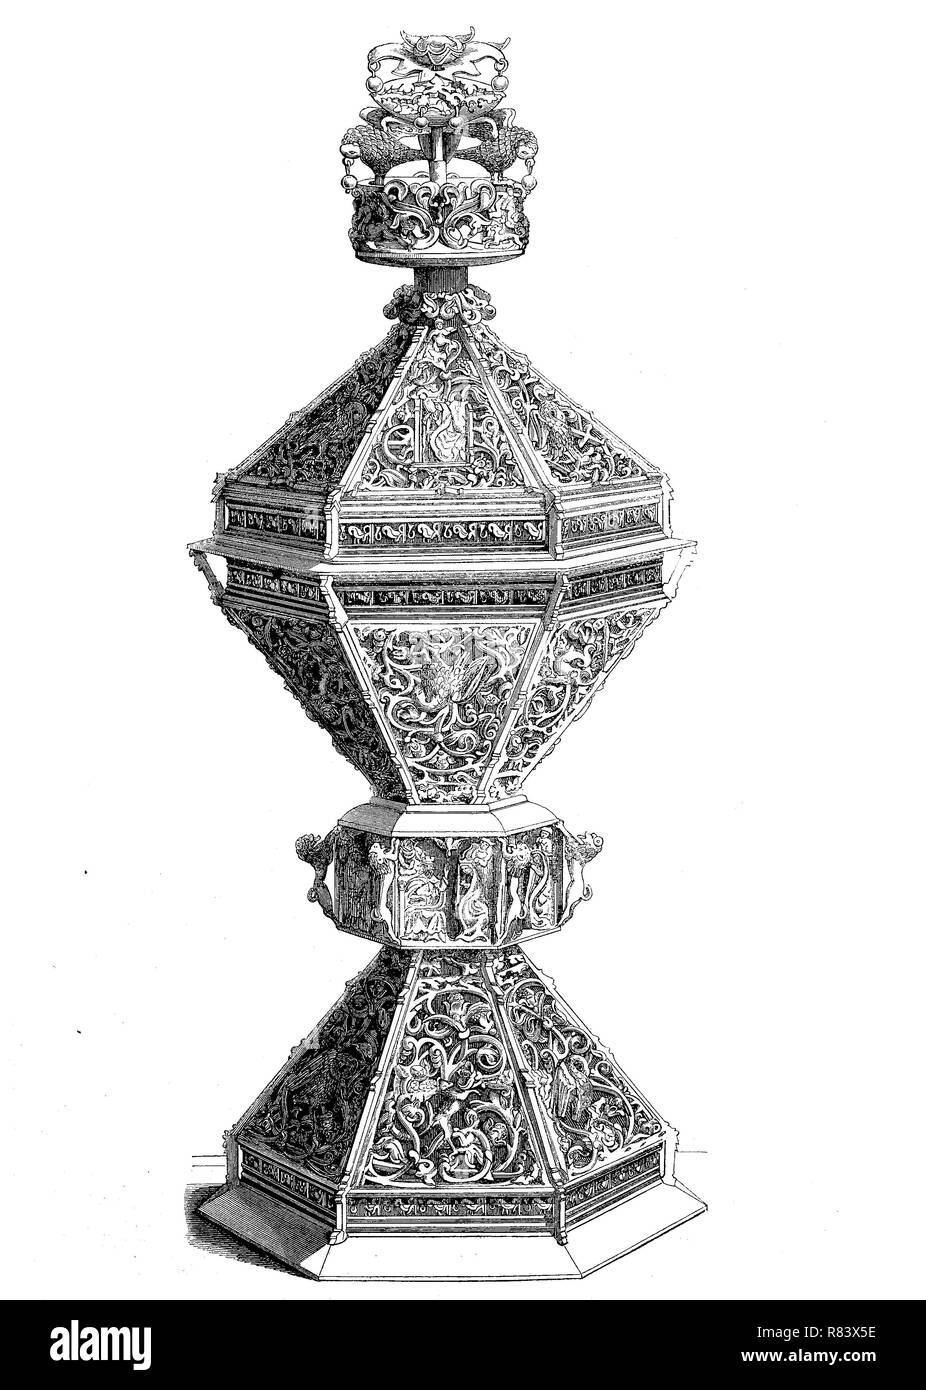 Digital improved reproduction, Silver-gilt and enamel, salt cellar from the year 1517, silbervergoldetes Salzbehältniss, from an original print from the year 1855 - Stock Image